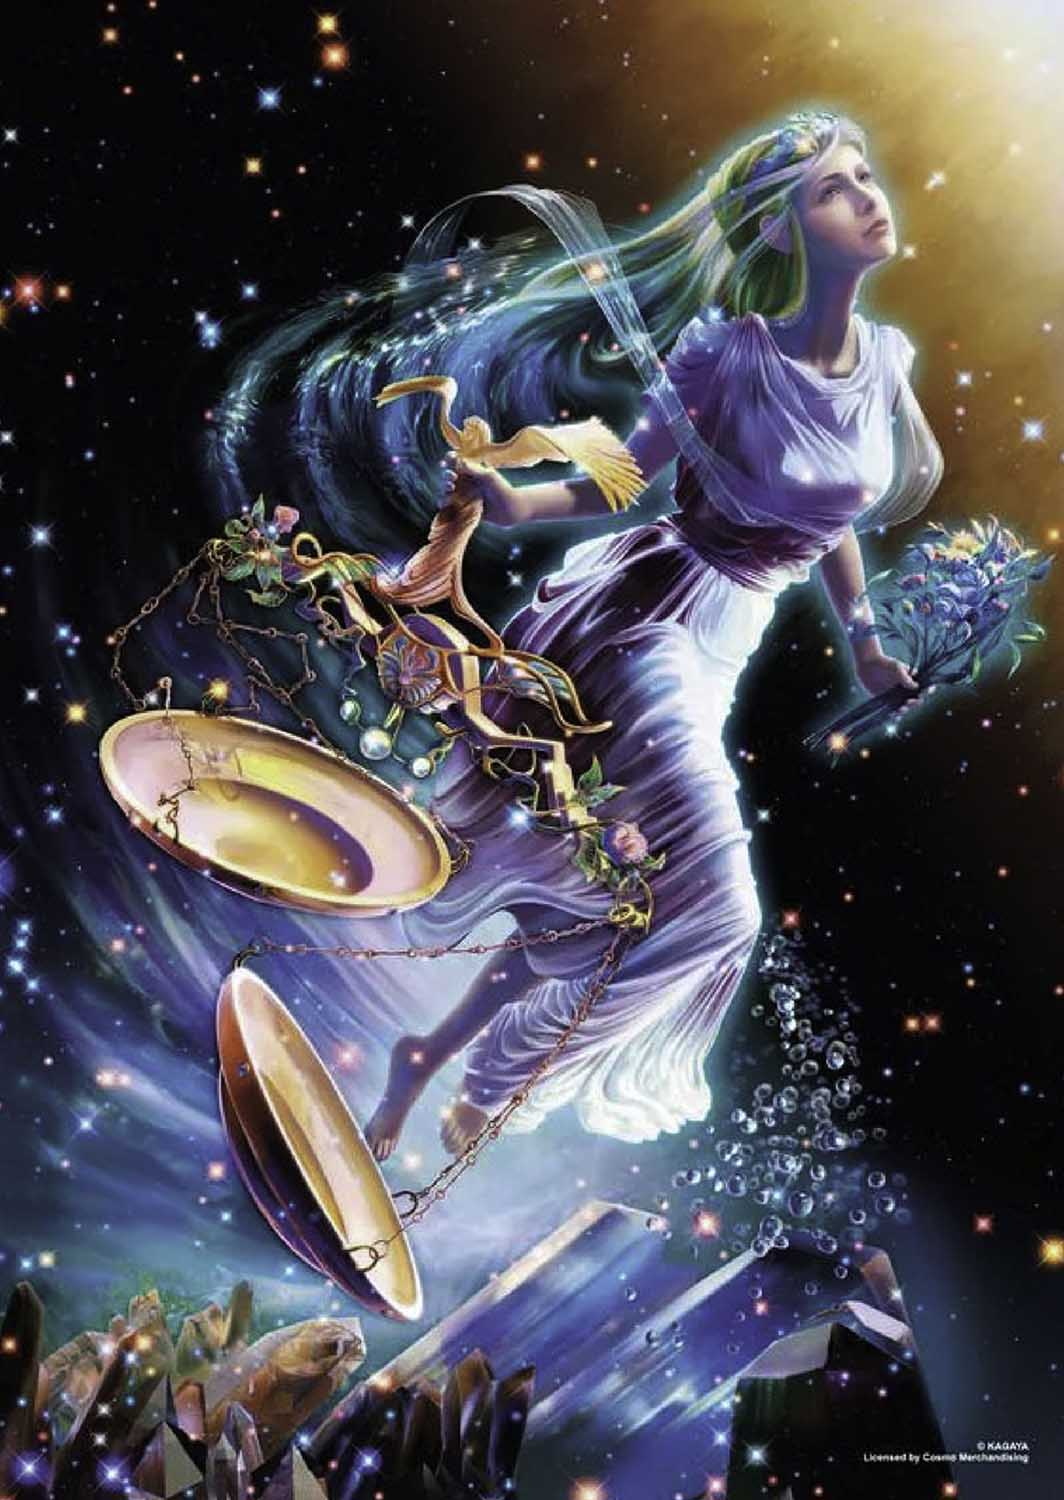 Libra Space Jigsaw Puzzle